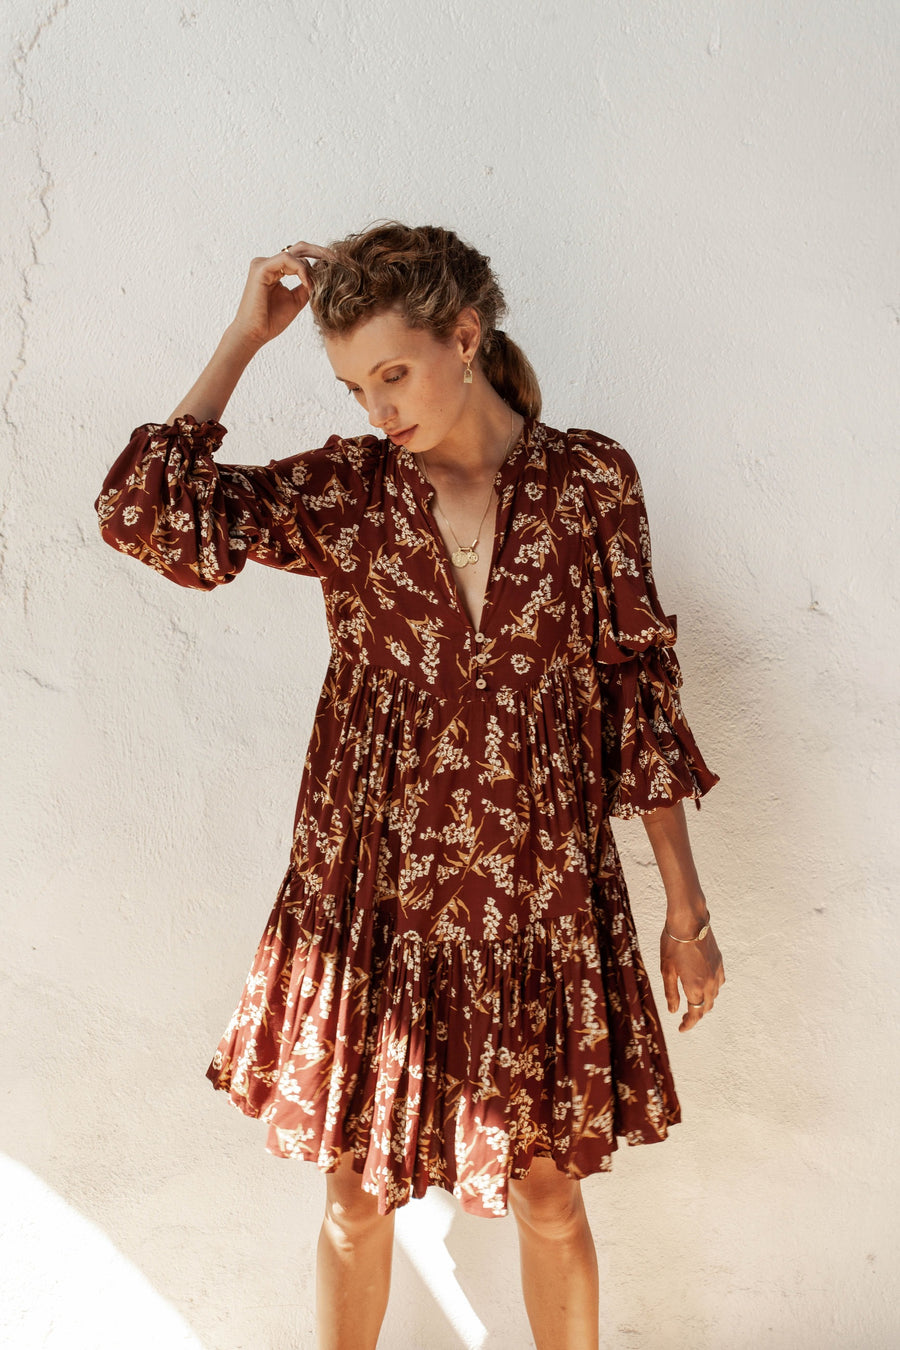 Bridgette Dress - Native Blooms - Natural Wood Fibre Rayon